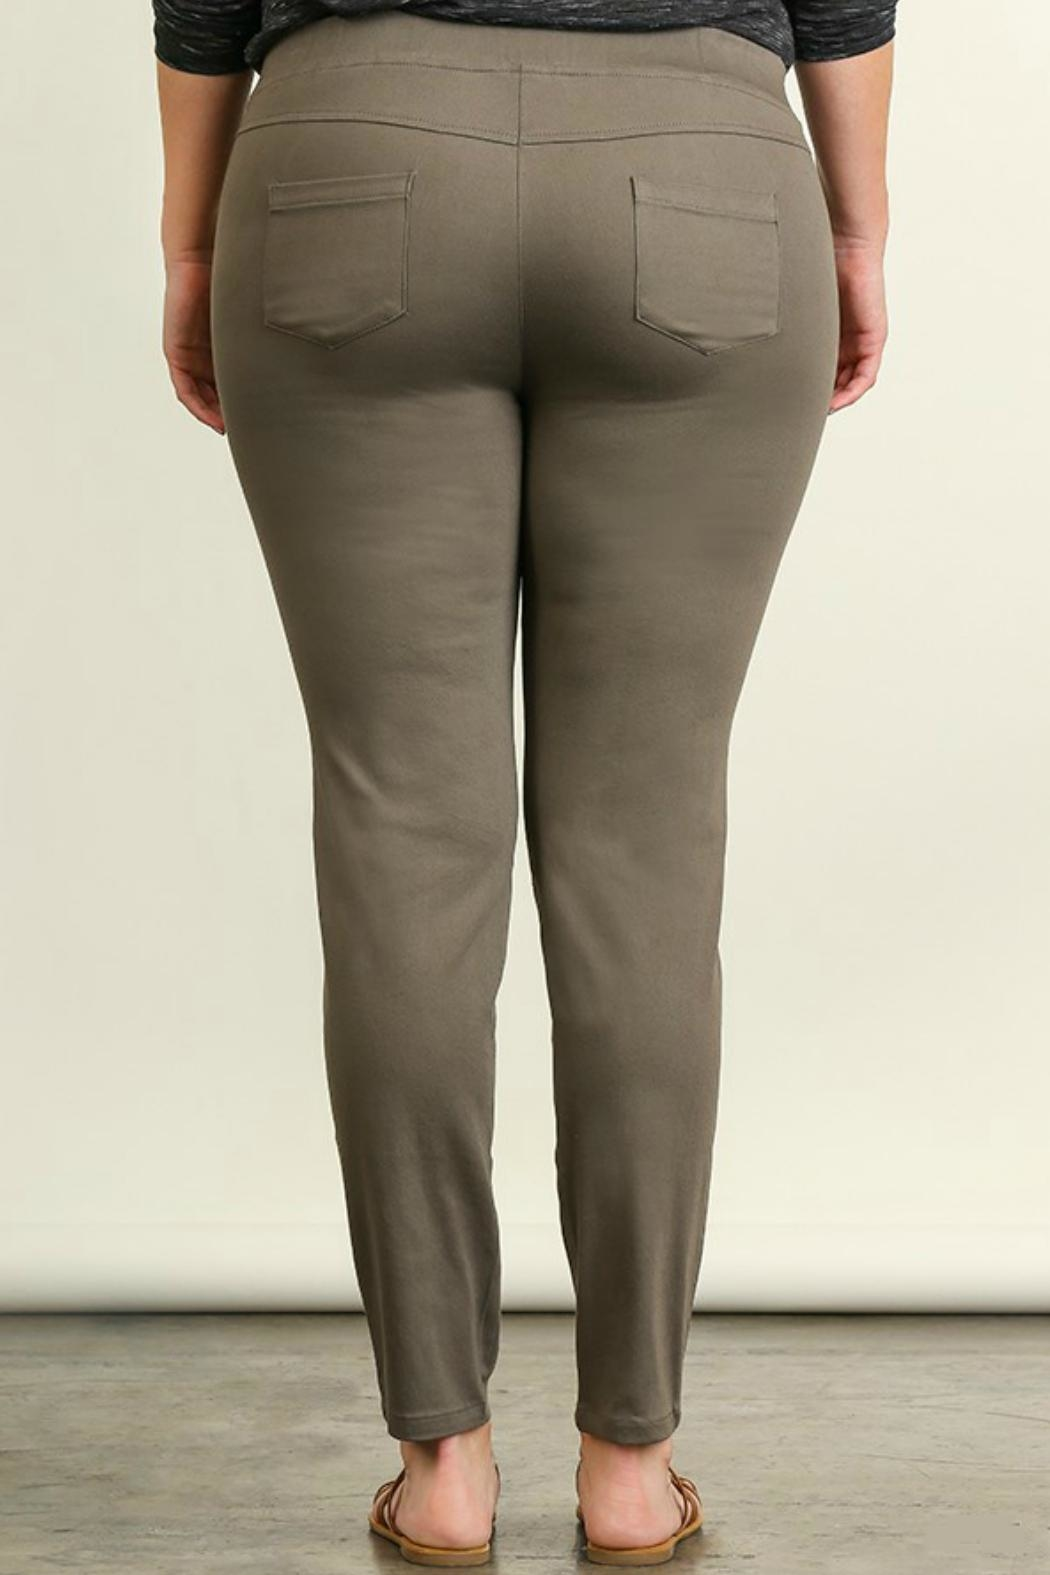 Umgee USA Favorite Olive Leggings - Front Full Image